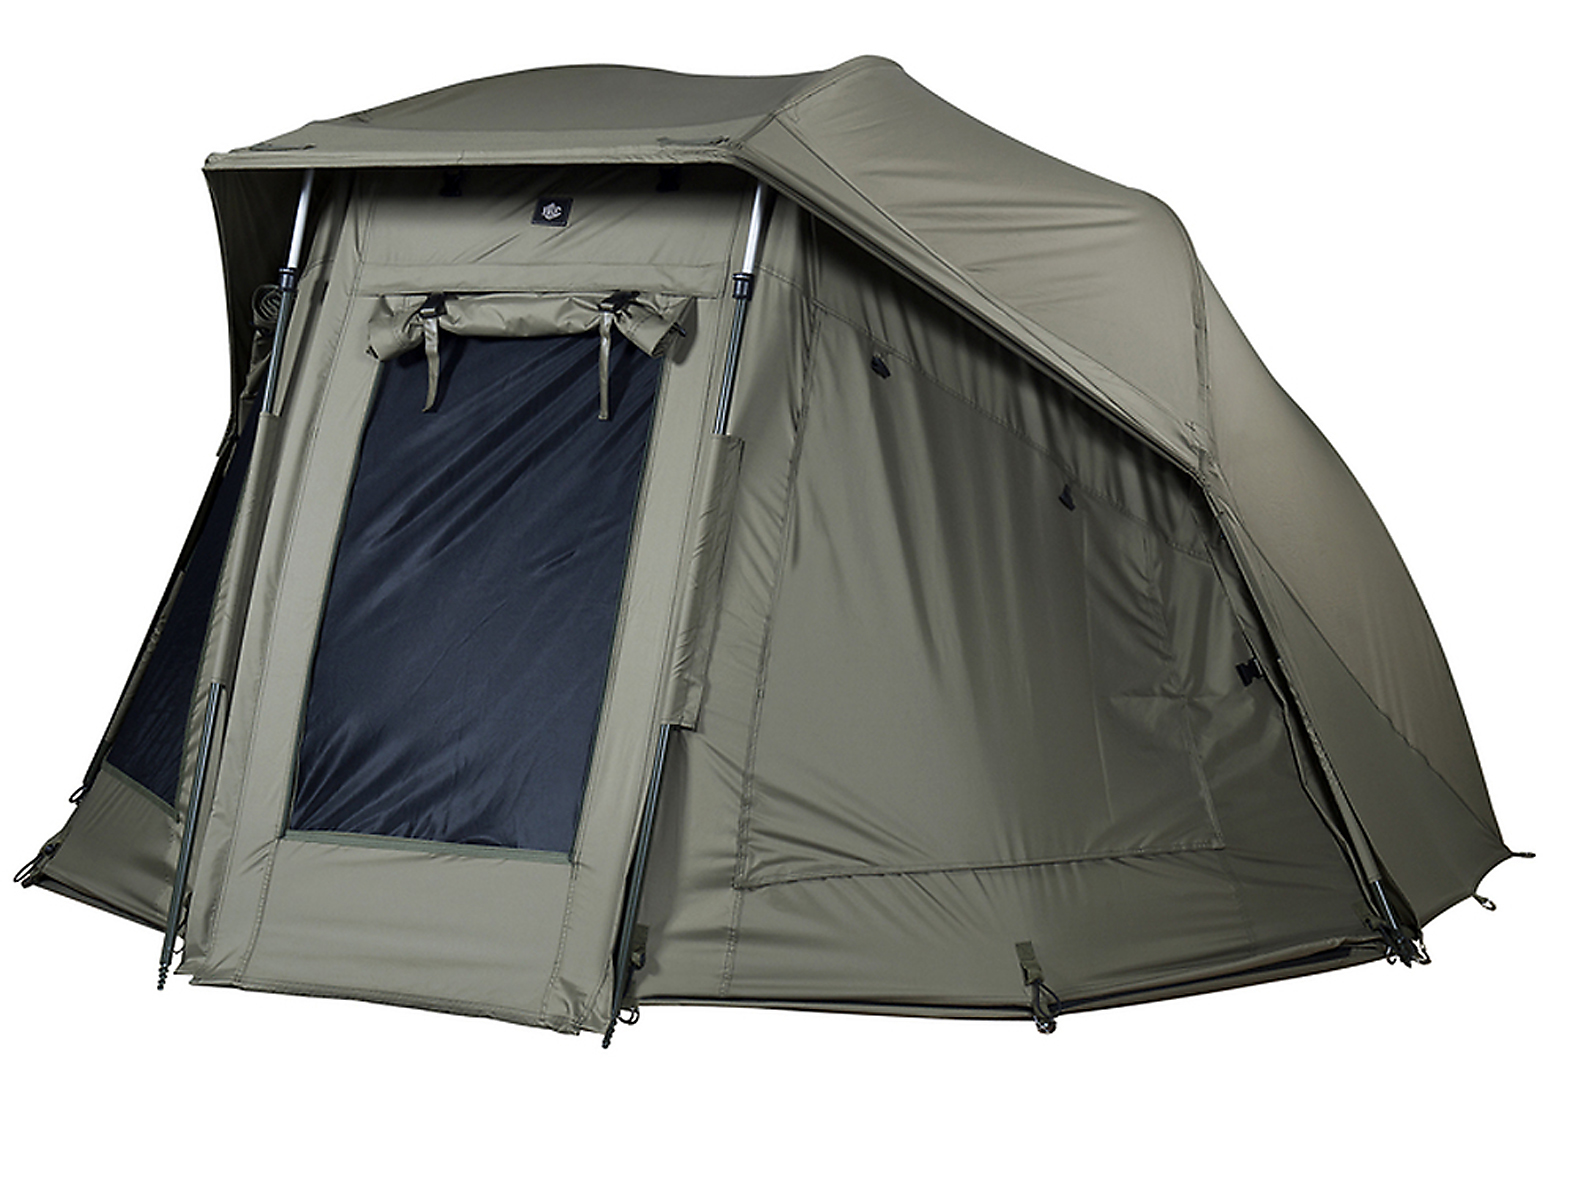 The 'Stealth Mk11' fully enclosed and ready for any weather situation